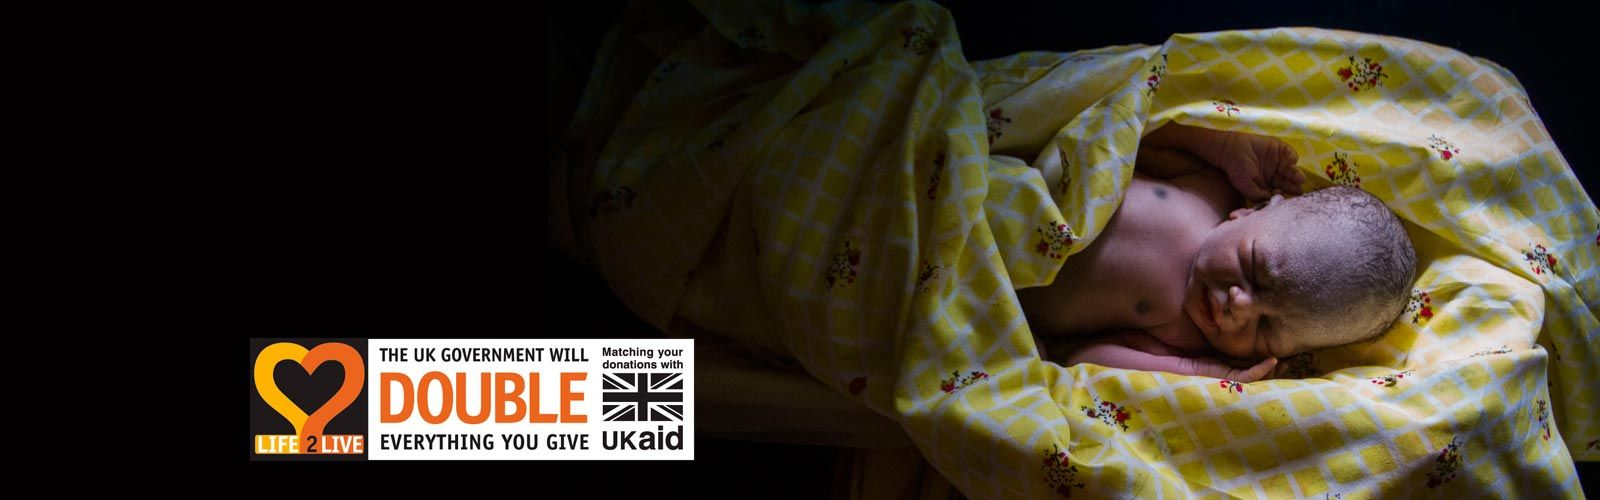 Life2Live campaign - baby Toby in South Sudan